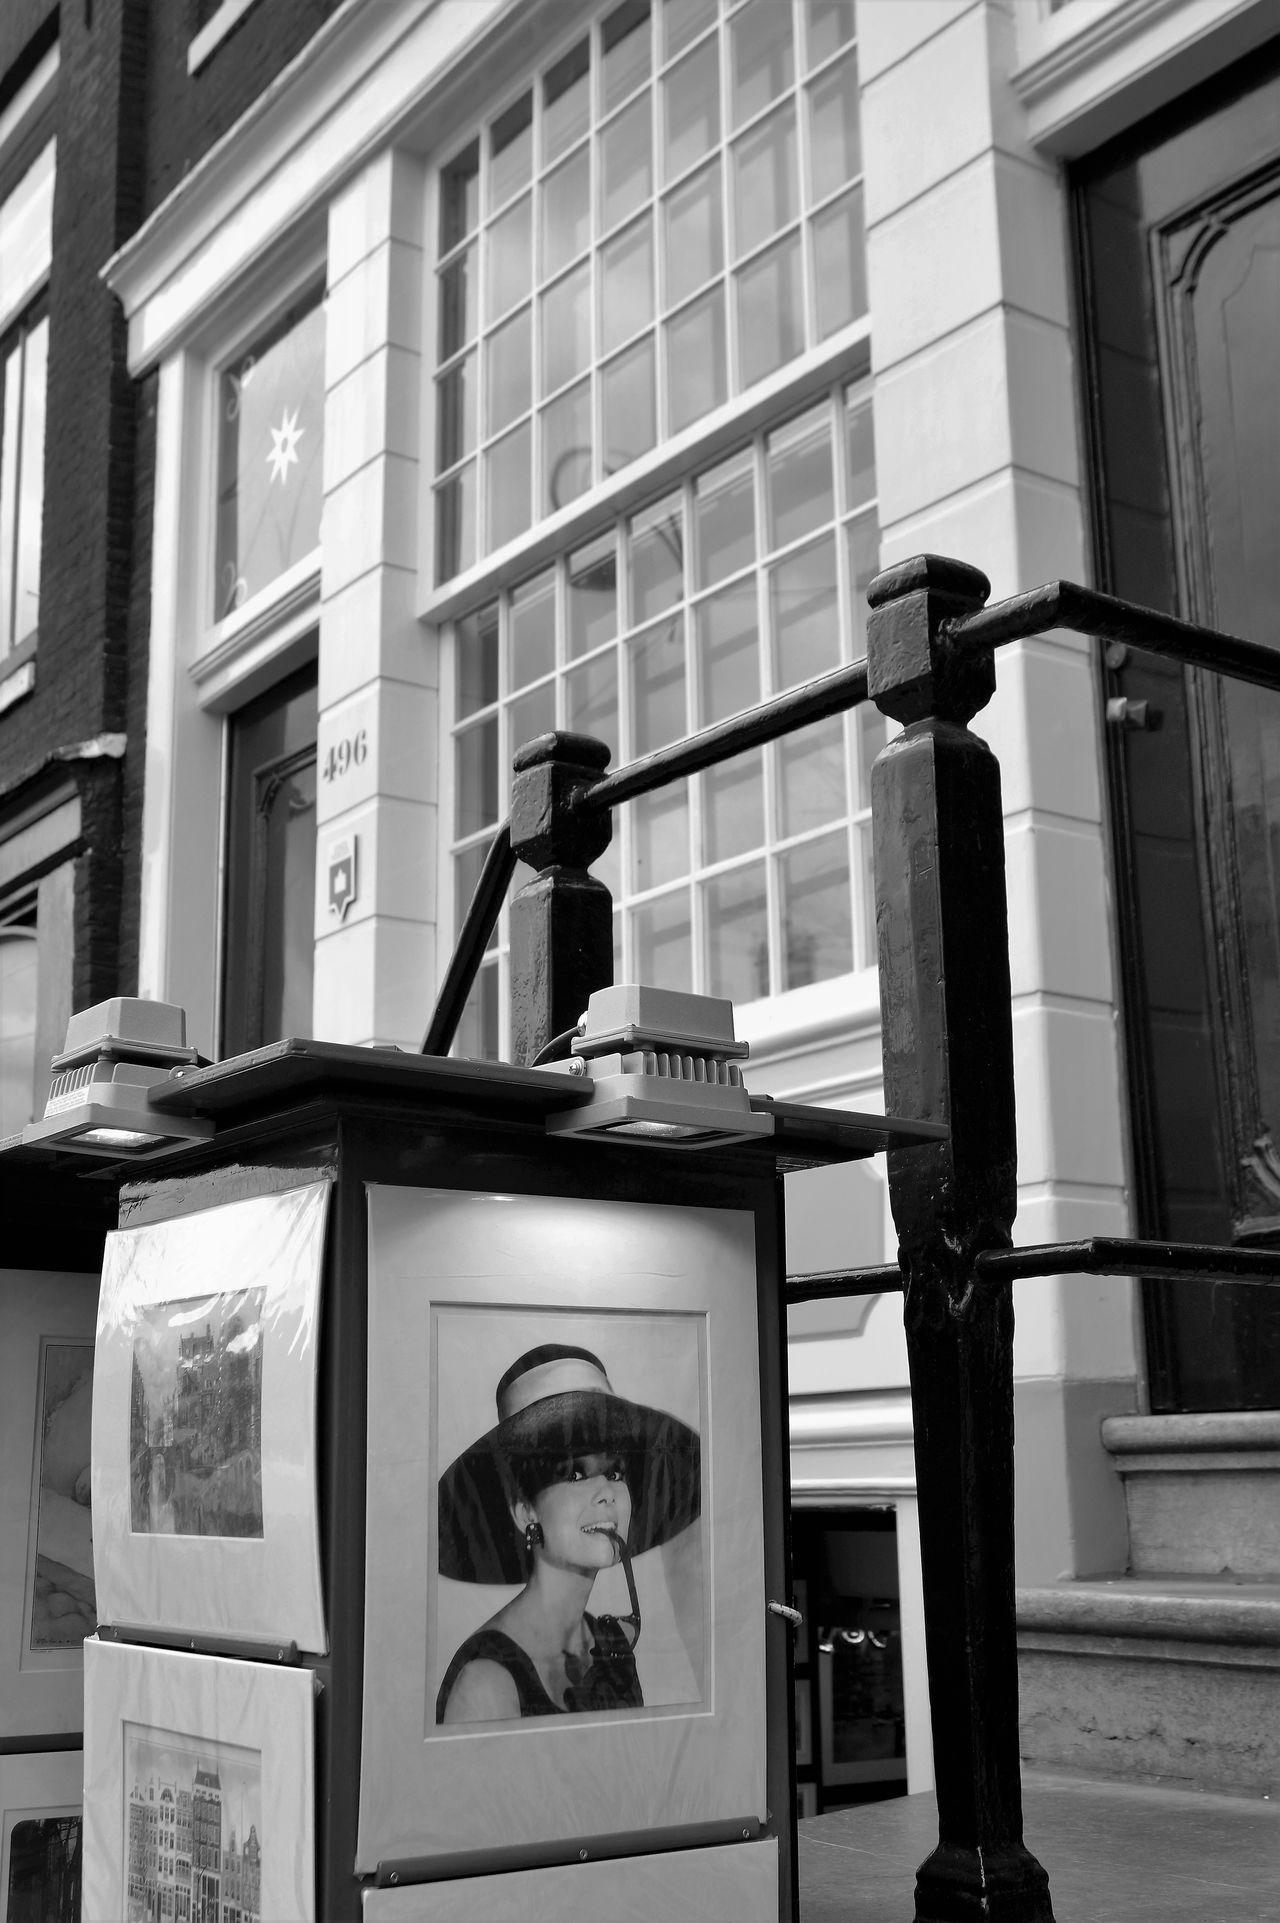 Architecture Audrey Hepburn Black & White Black And White Blackandwhite Building Exterior Built Structure Day Holly Hollywood Monochrome Monochrome Photography Outdoors Railing Steps Street Photography Streetphotography Window Amsterdam City Travel Destinations